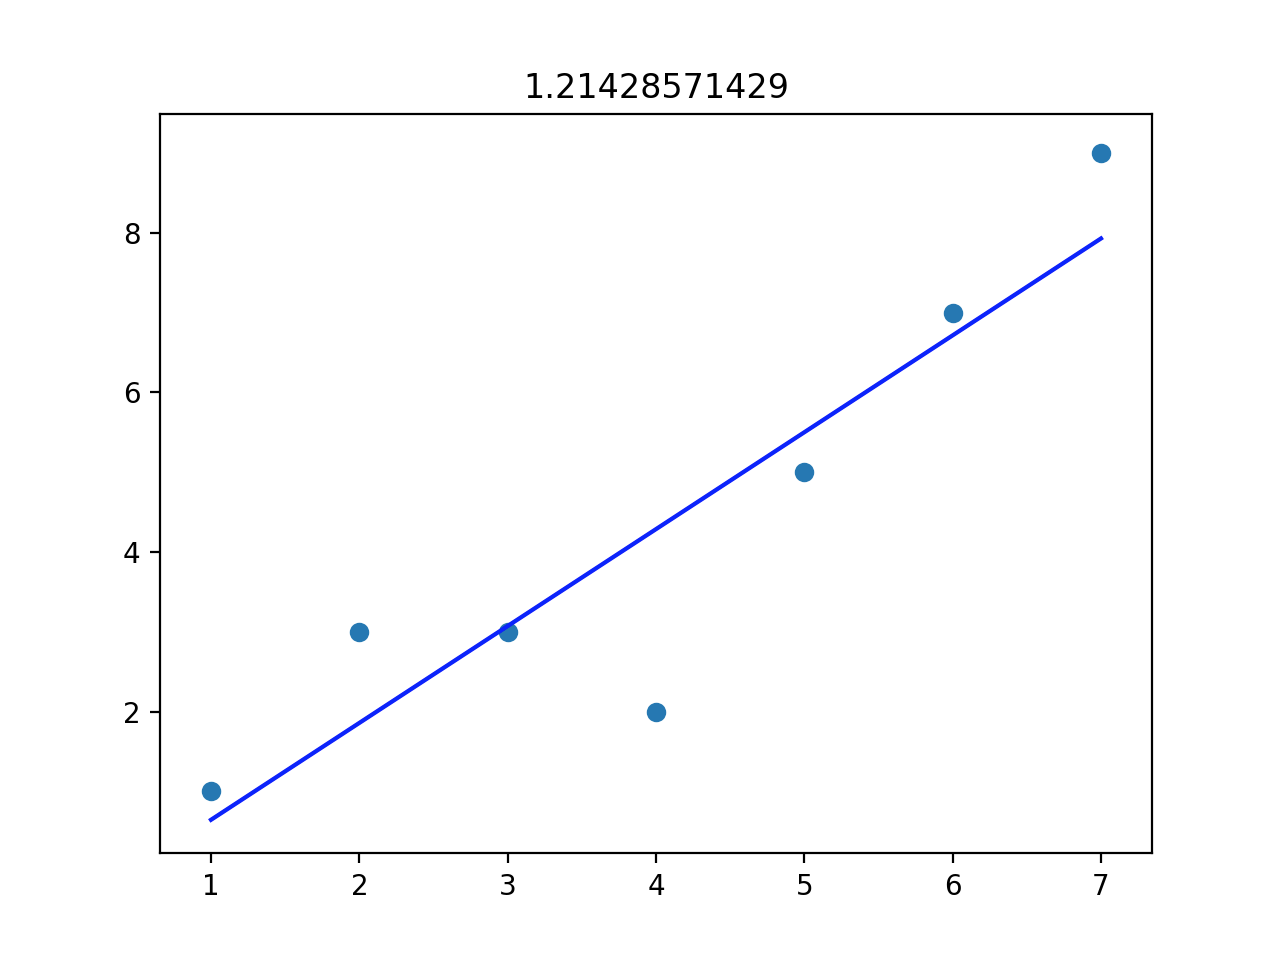 Scatterplot with line